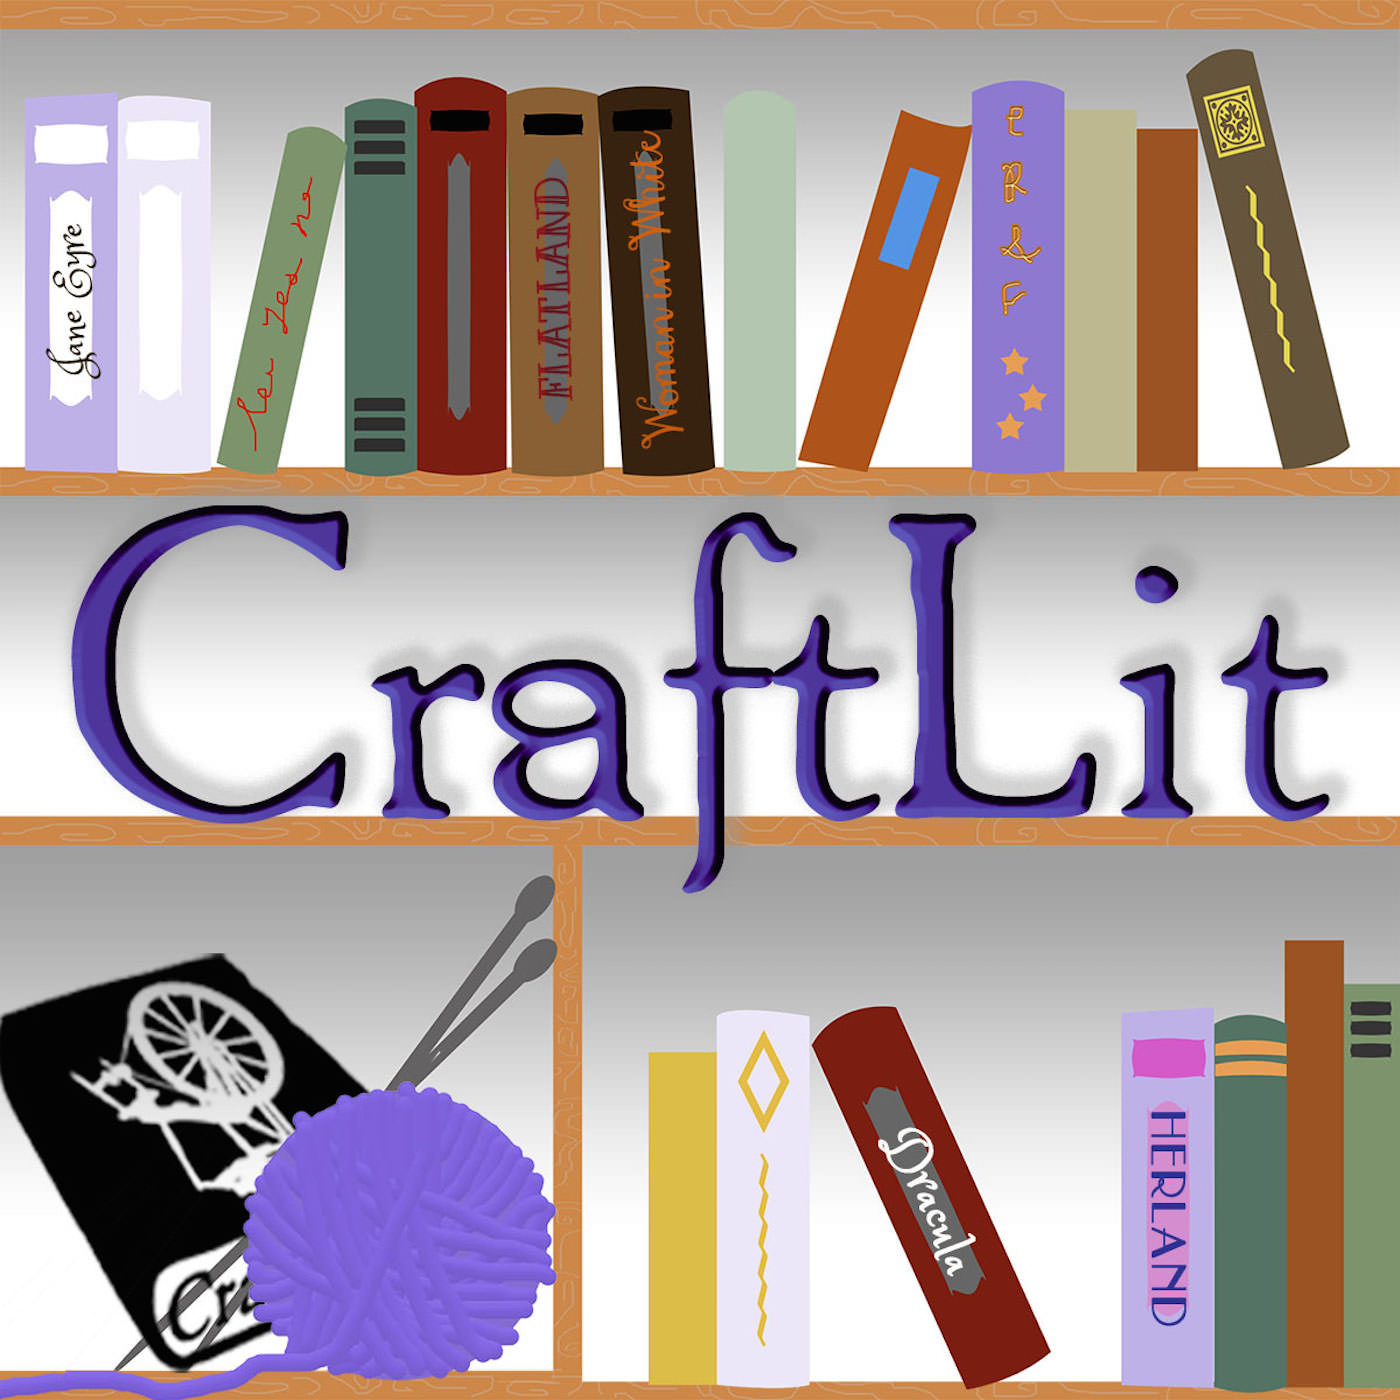 CraftLit - Serialized Classic Literature for Busy Book Lovers show image